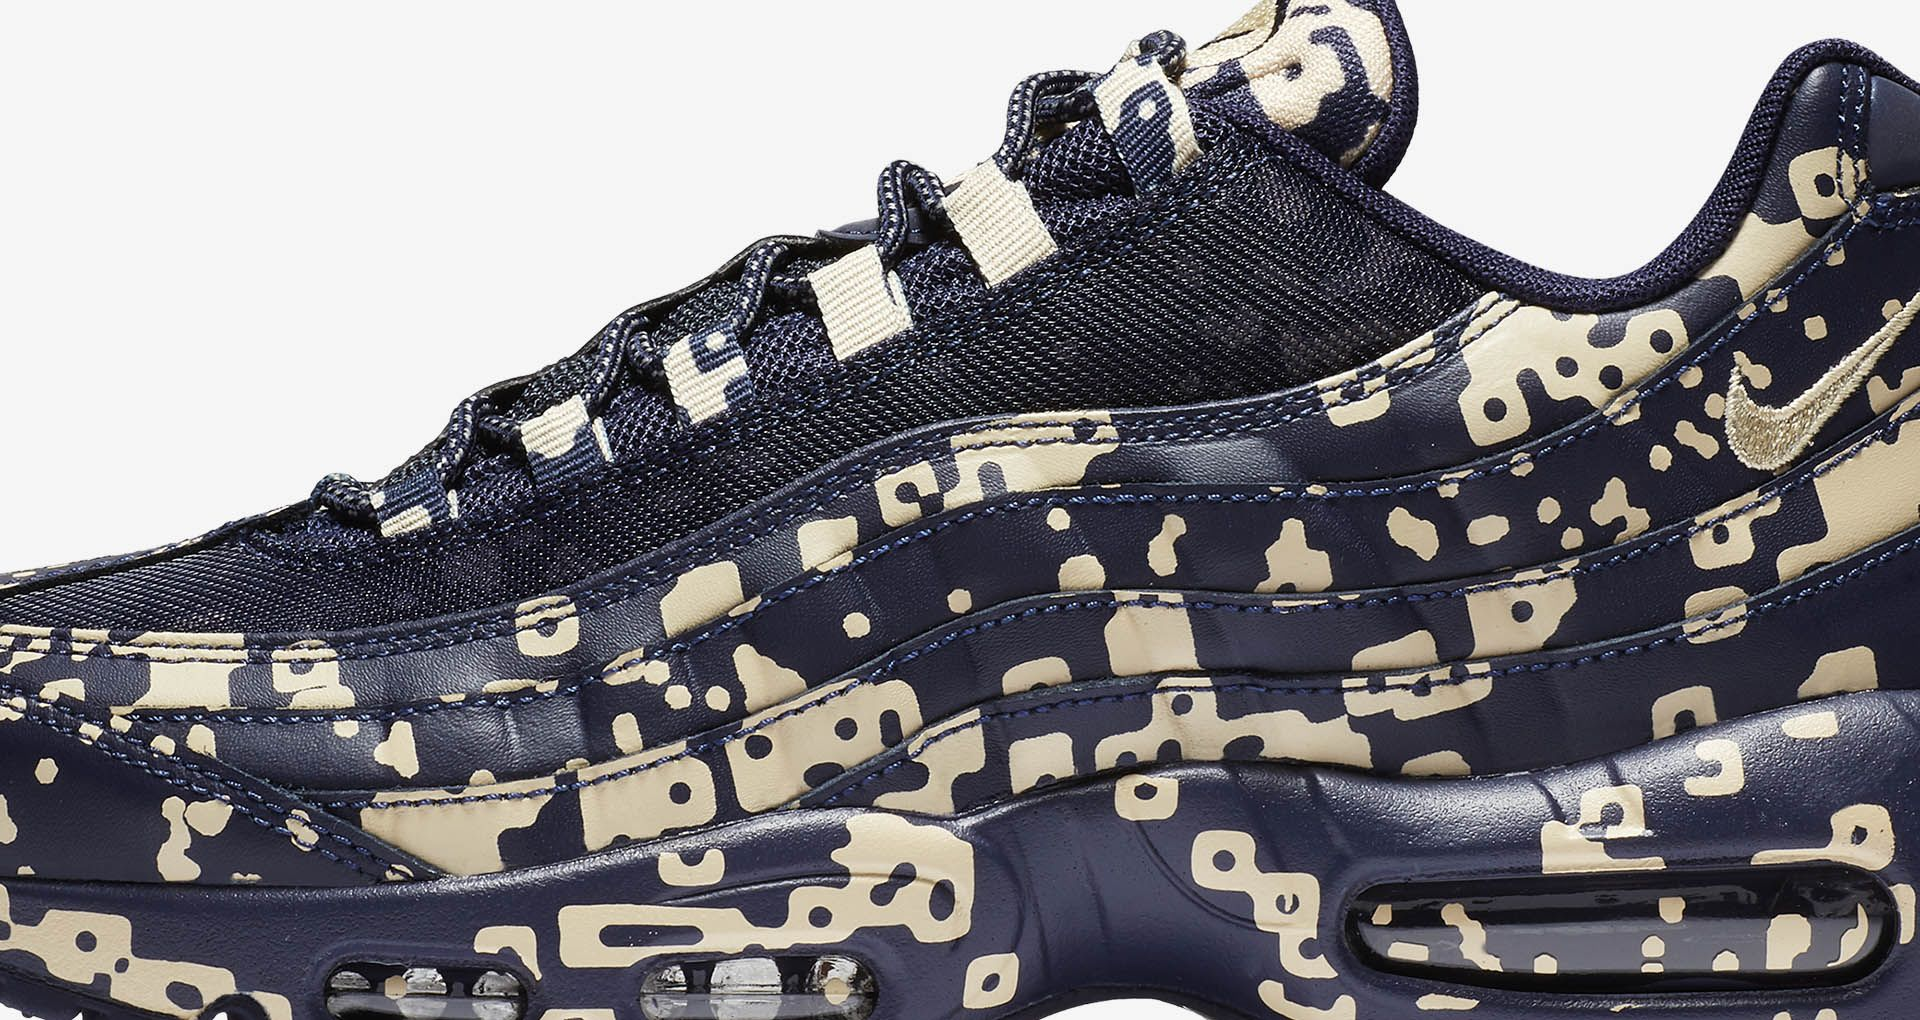 new concept 0dd00 34f63 Nike Air Max 95 Cav Empt 'Blackened Blue' Release Date. Nike ...